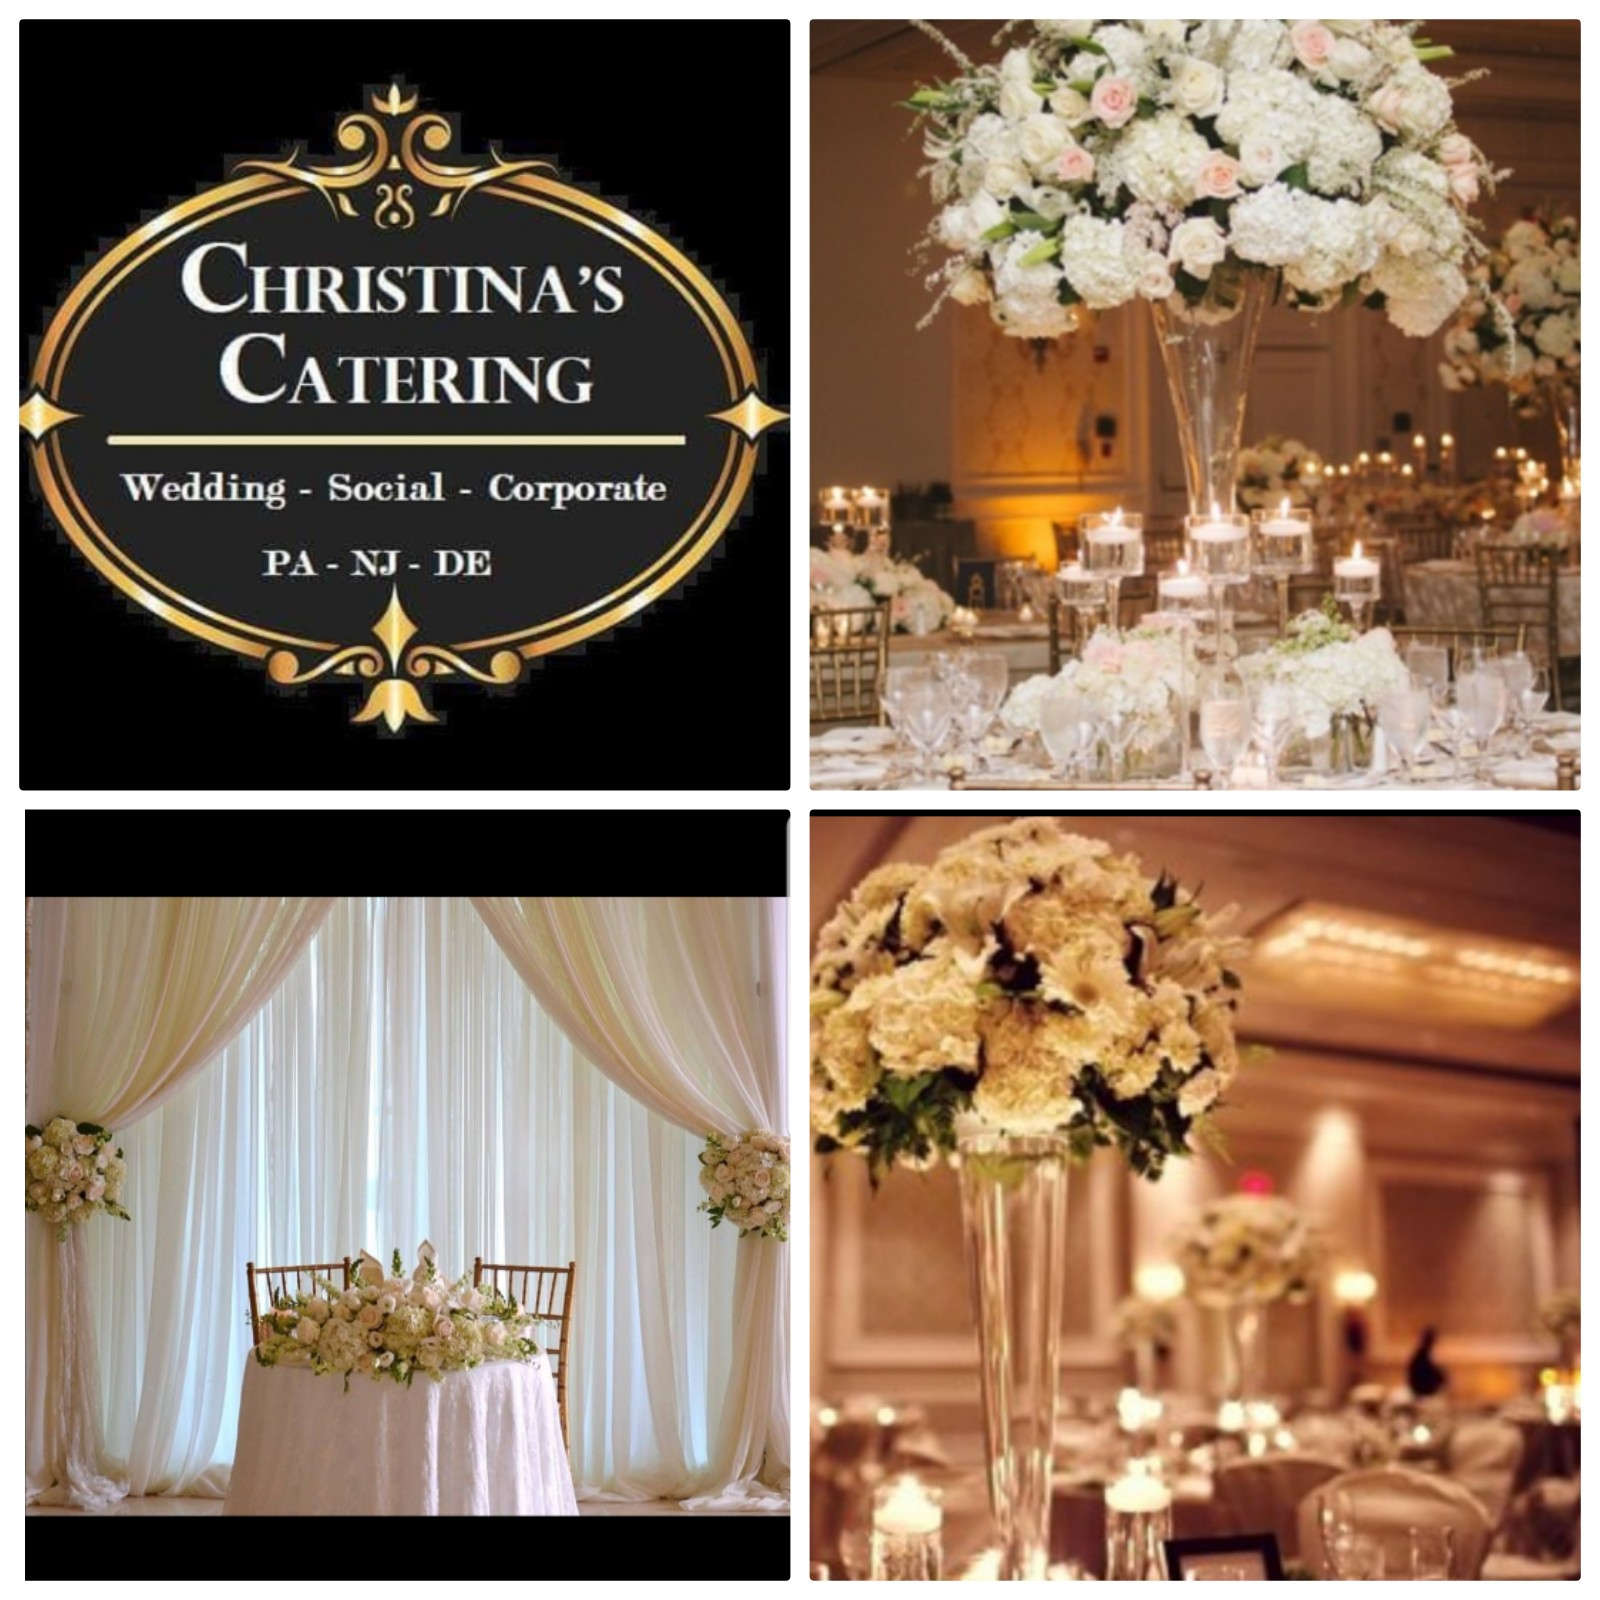 Christina's Catering featured venue